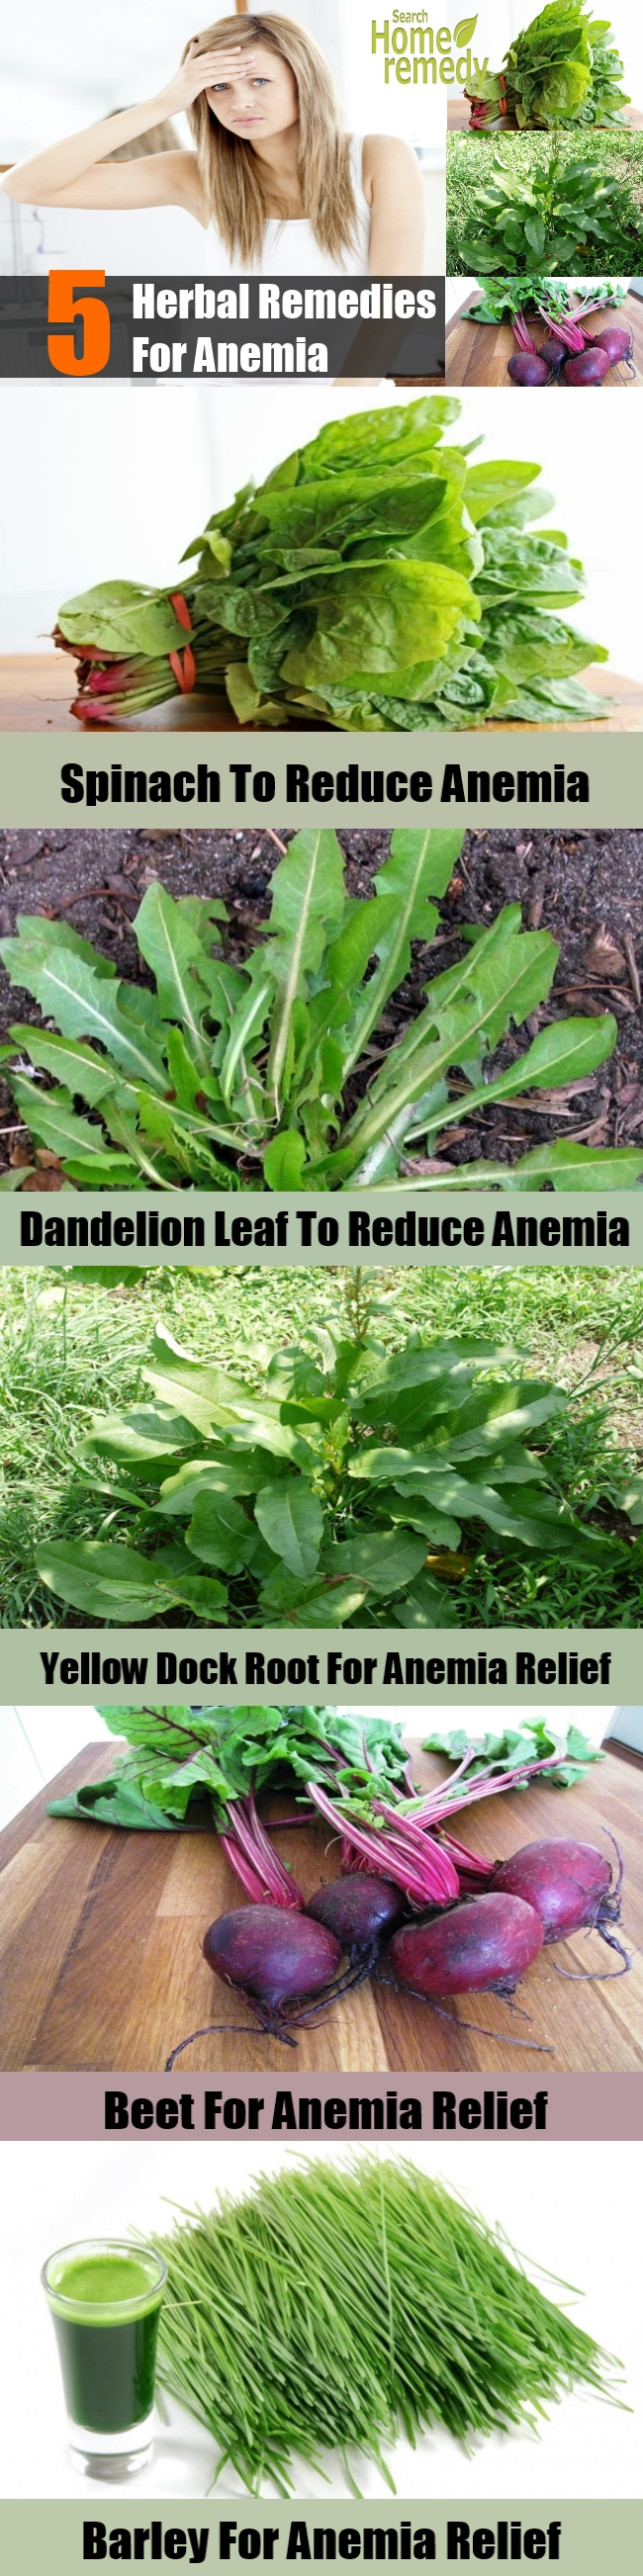 Top 5 Herbal Remedies For Anemia